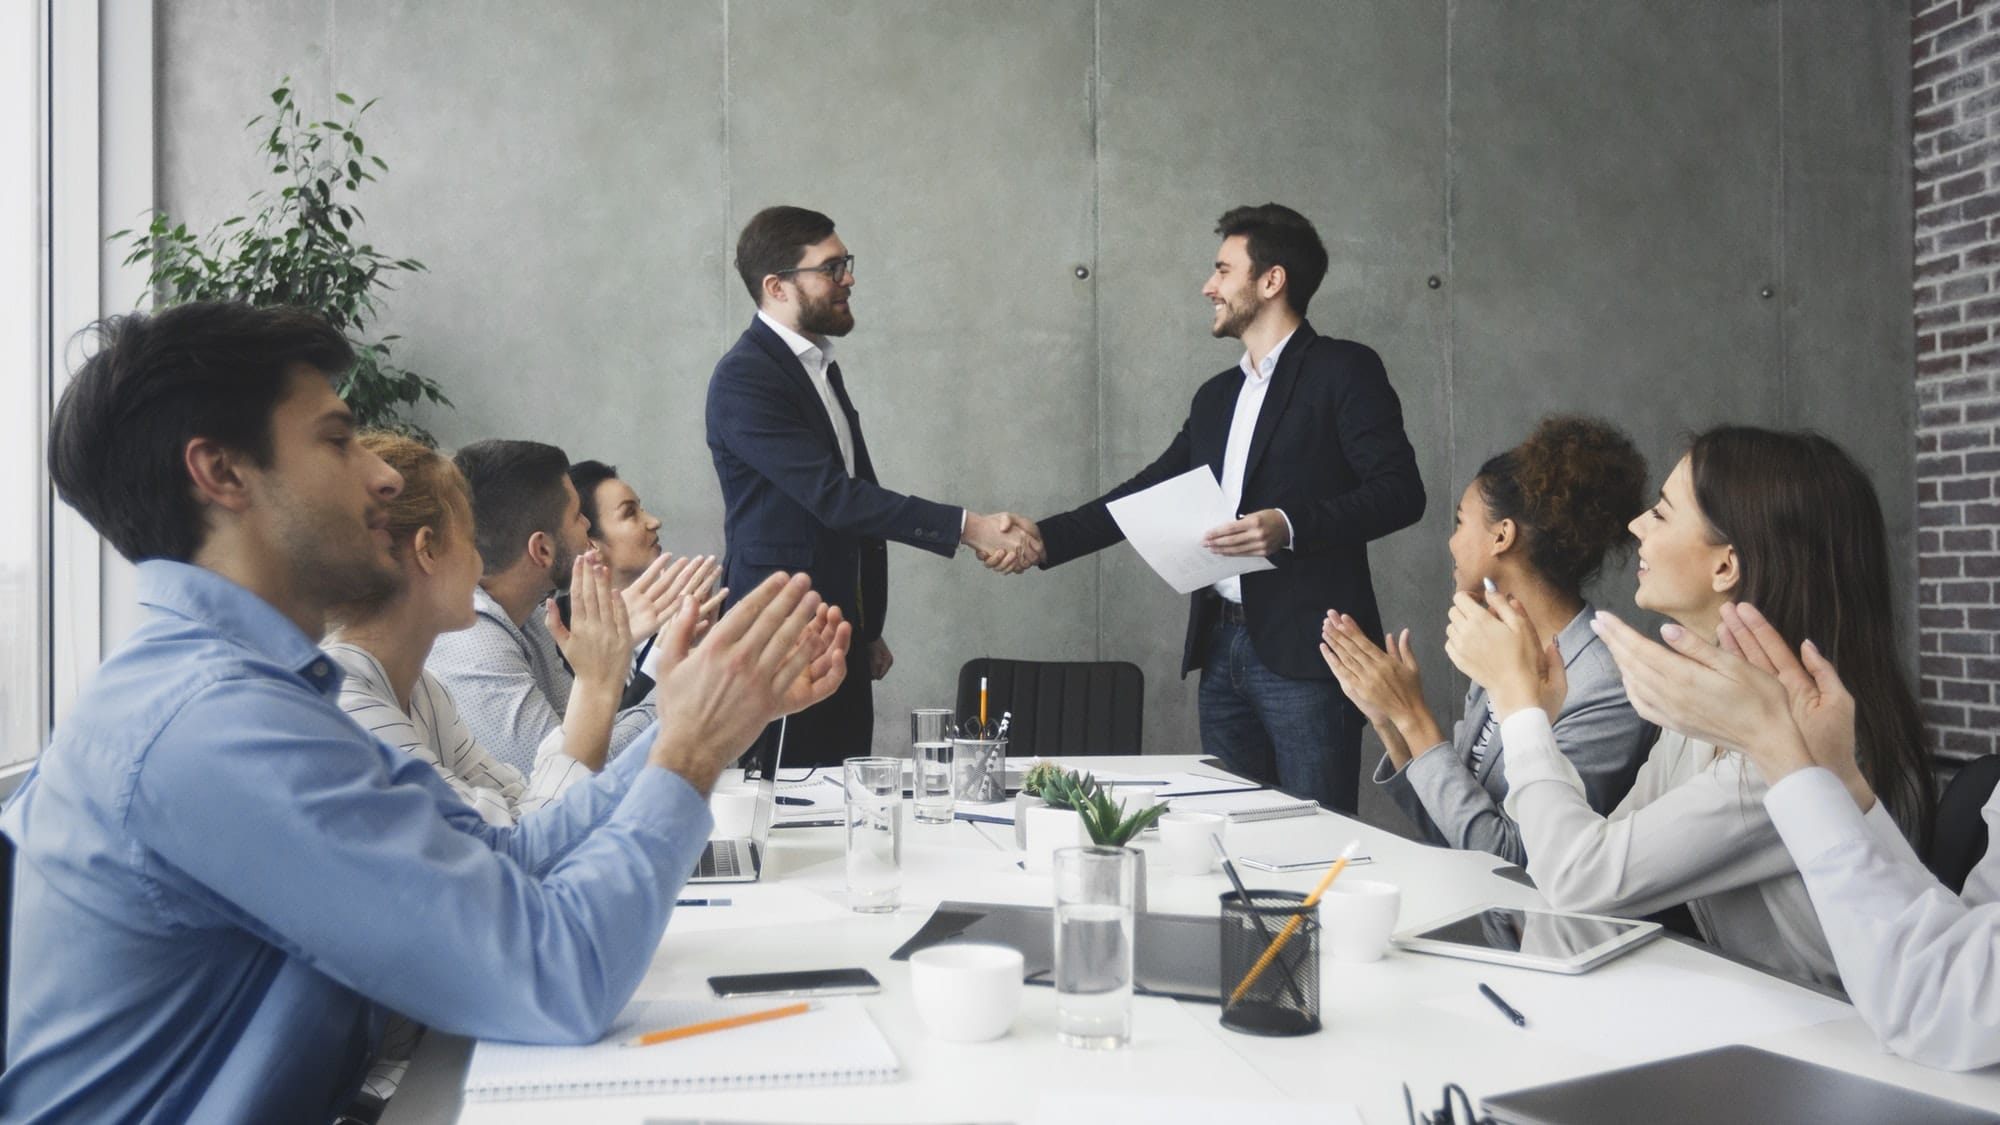 Striking grand deal. Business people congratulating their colleagues